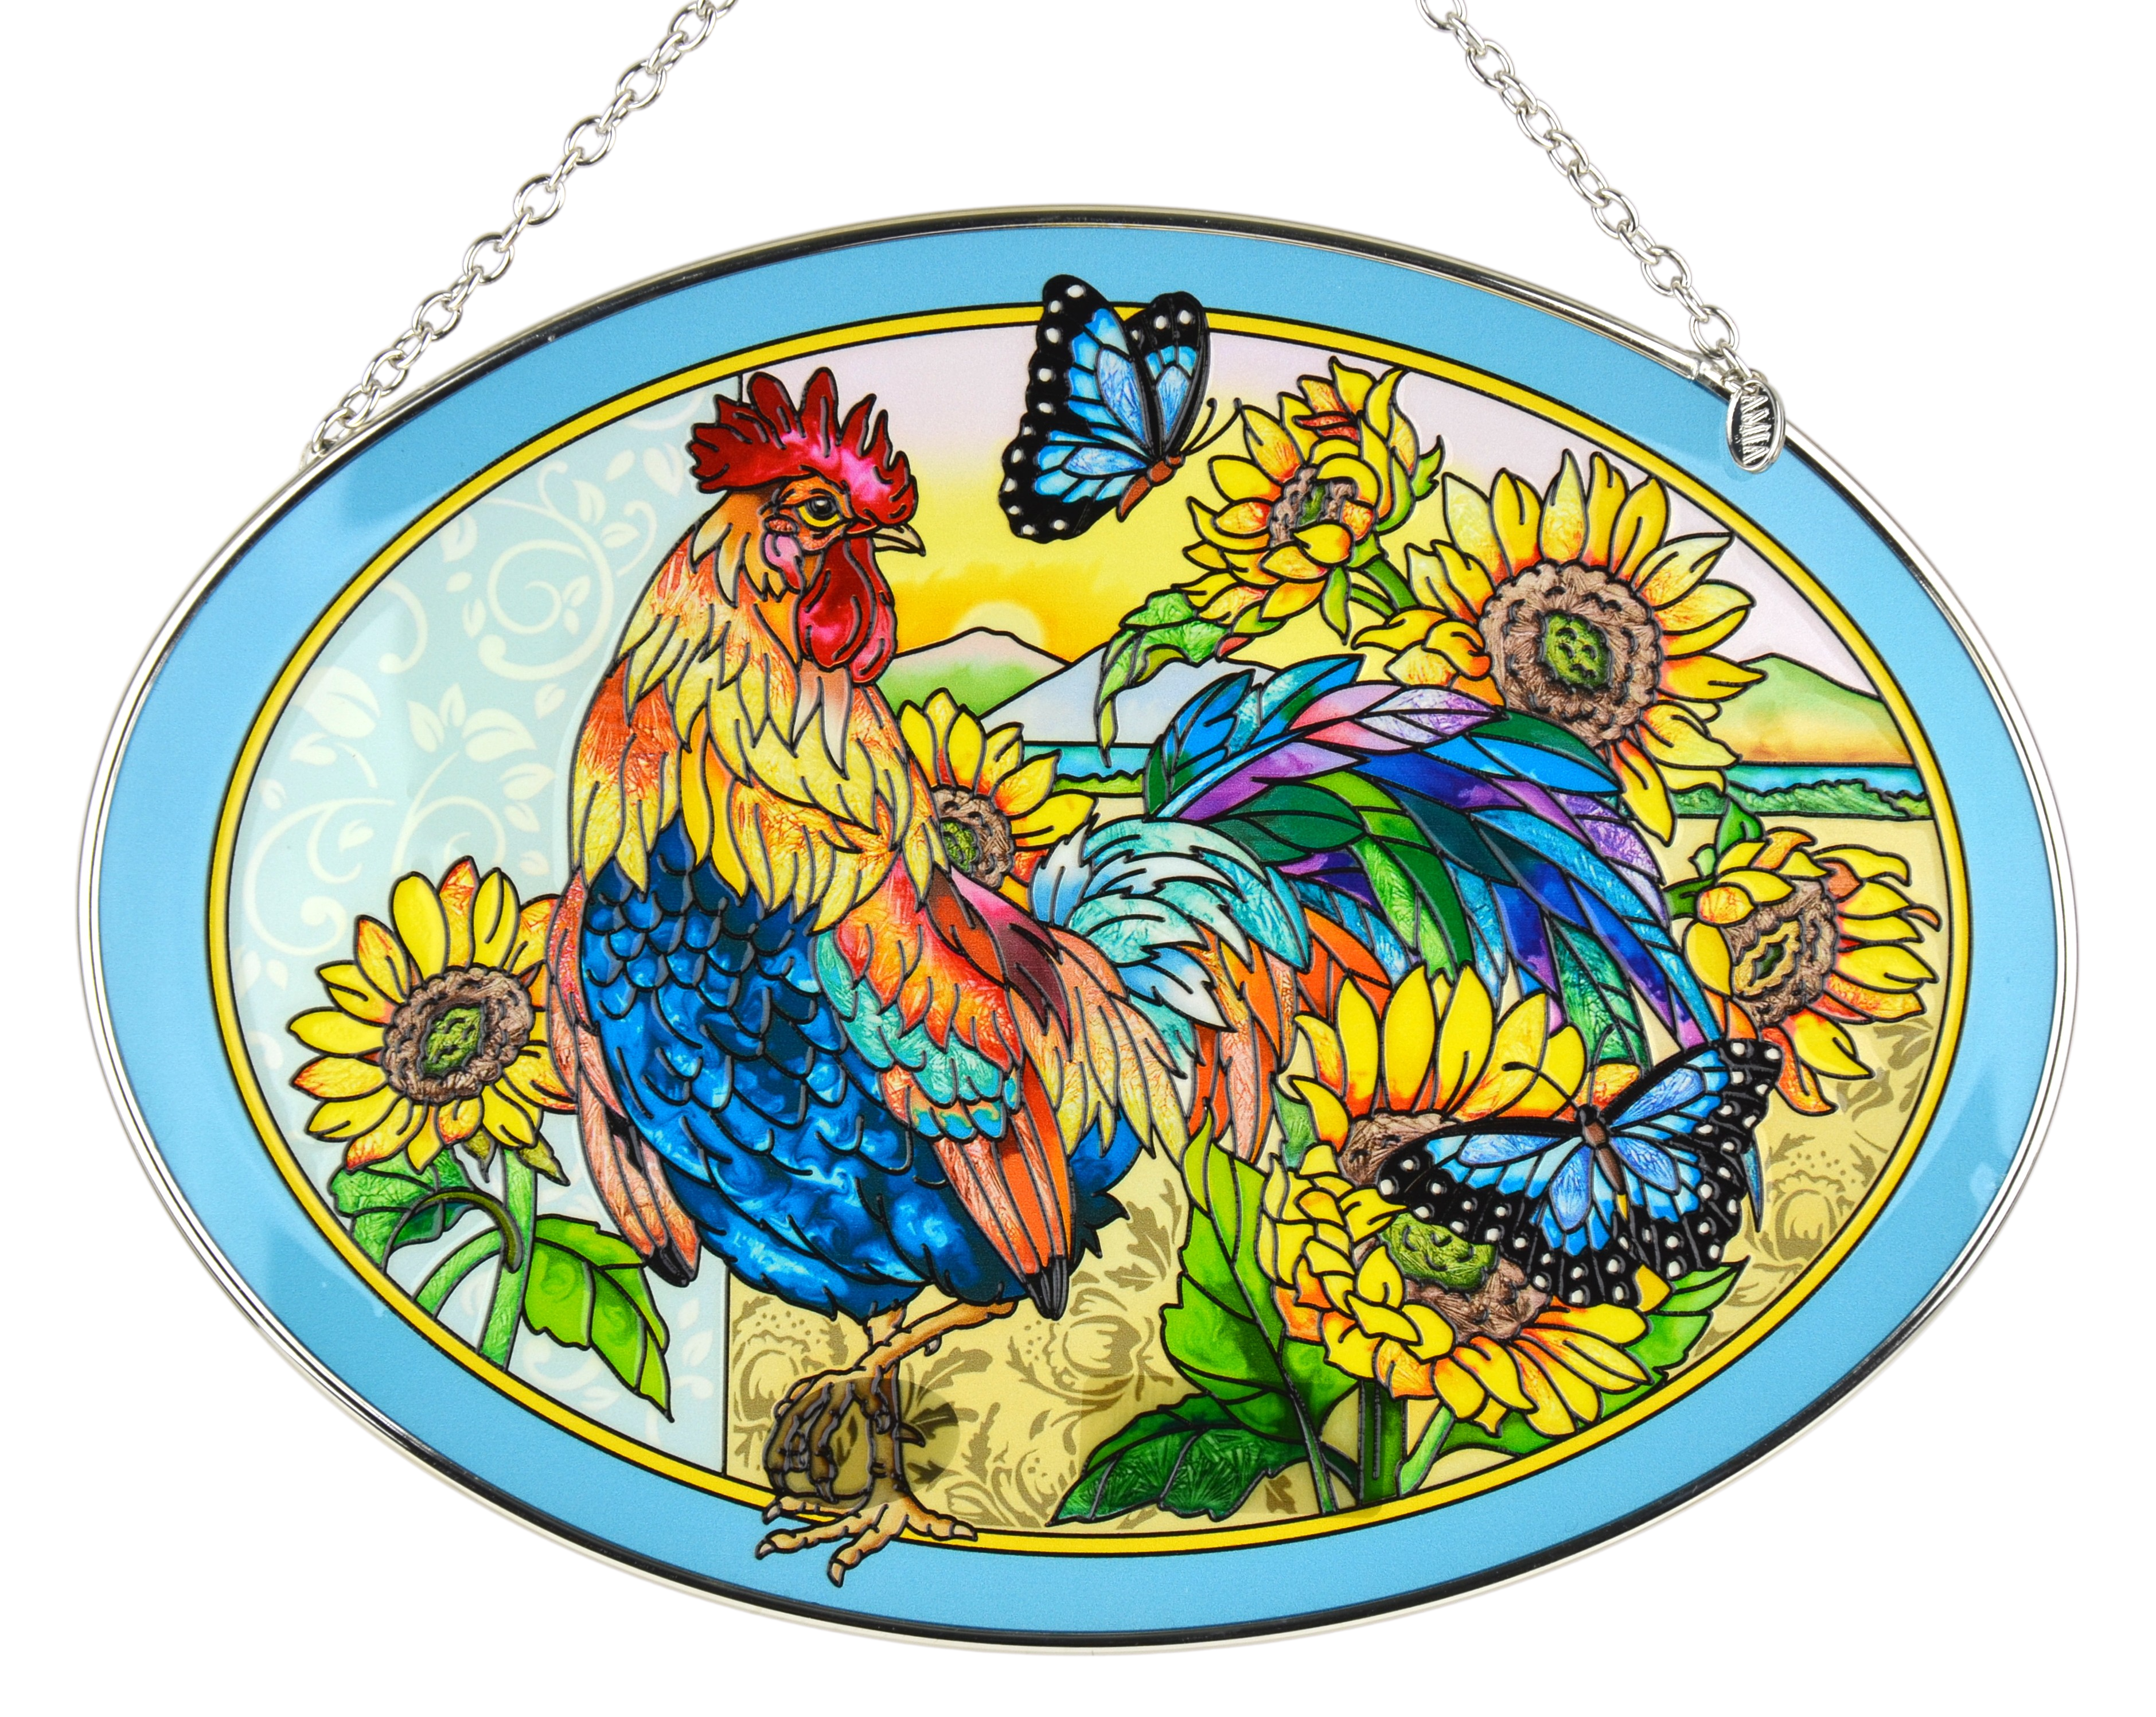 Chicken and Rooster Suncatchers